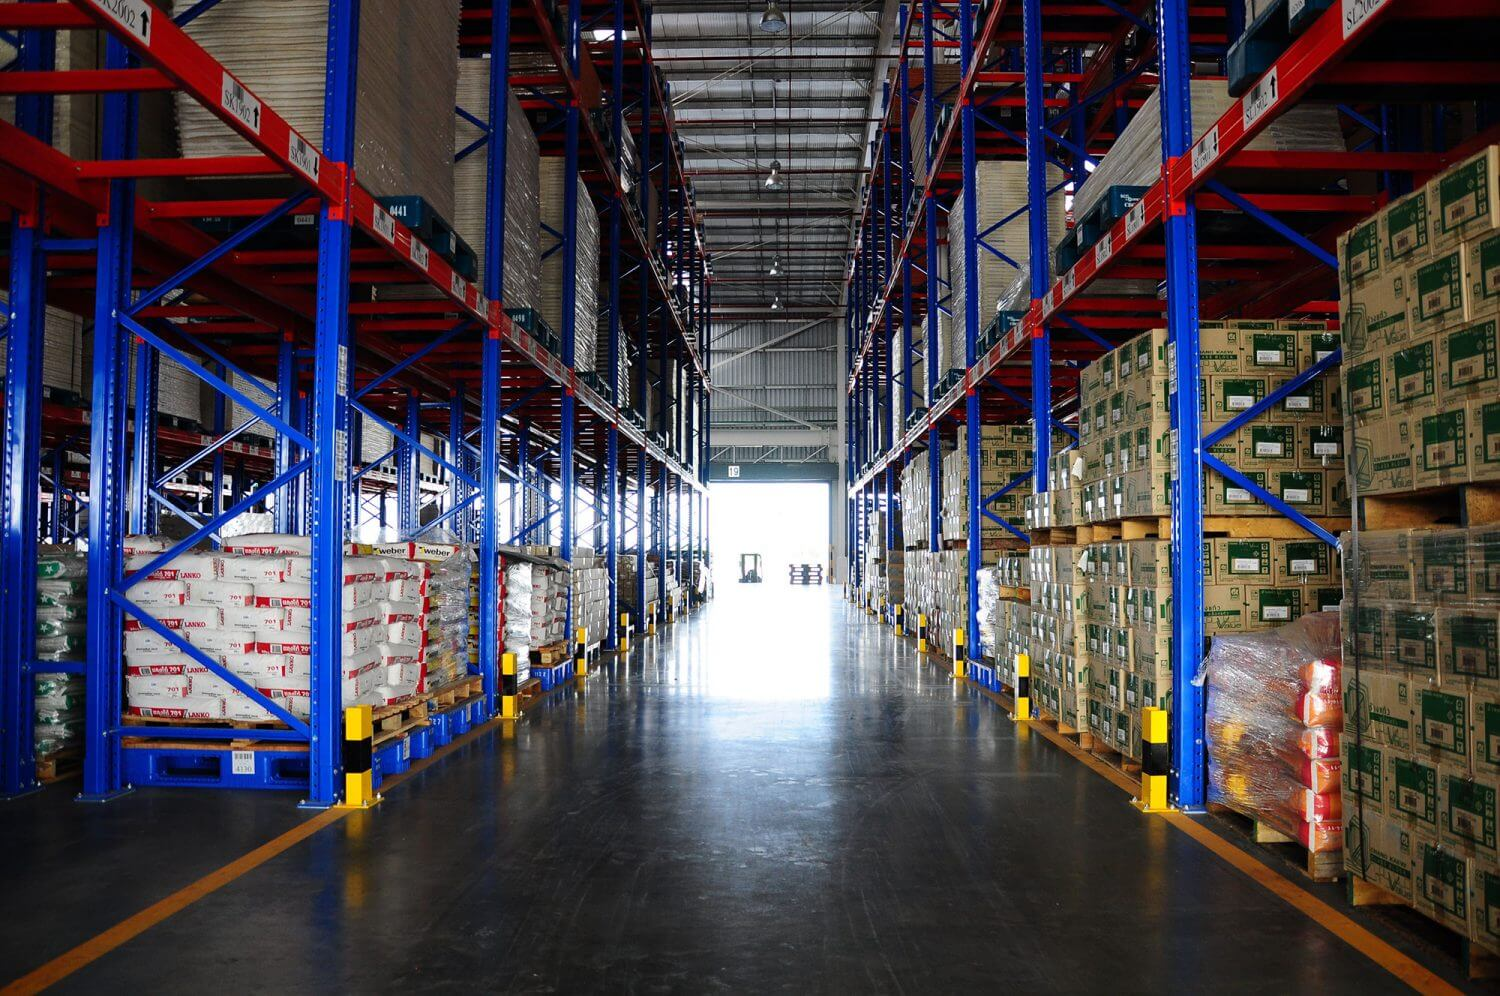 SCG Logistics' Warehouse Management service